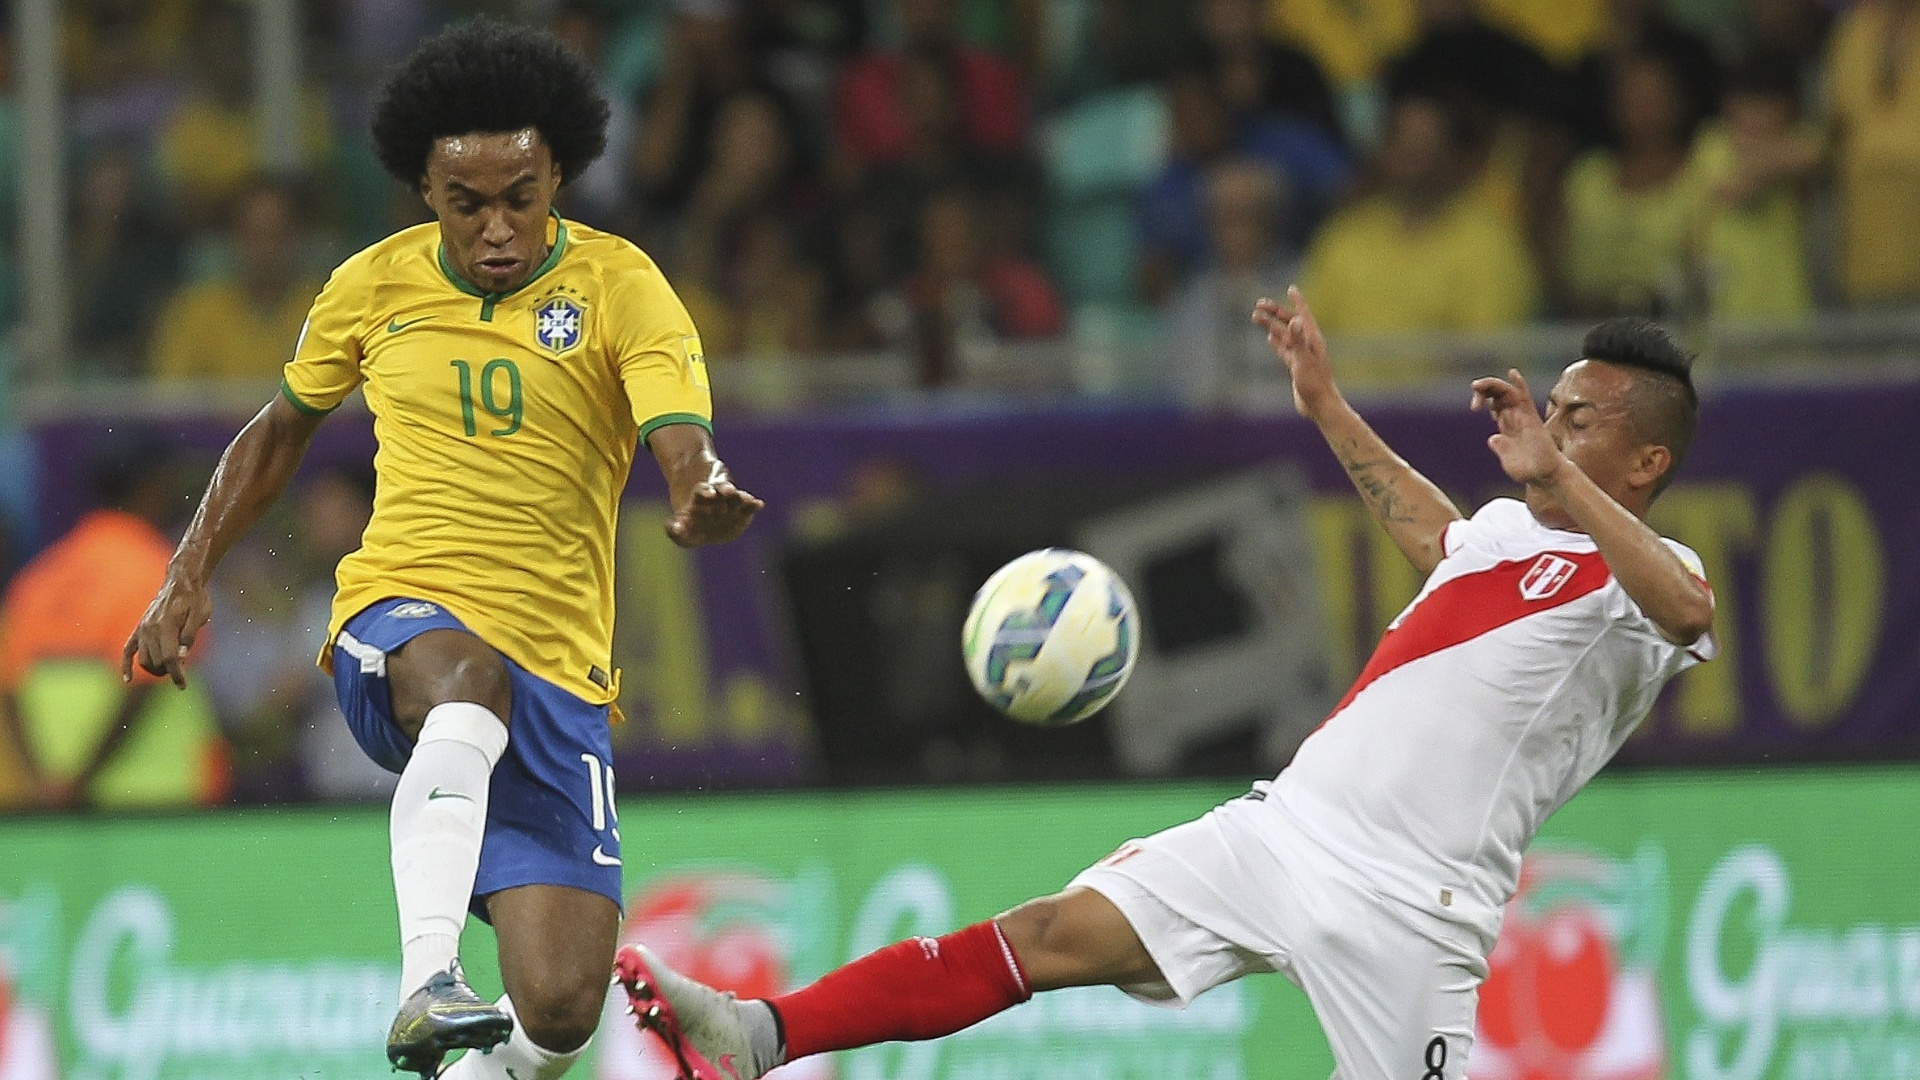 Willian disputa a bola na partida do Brasil contra o Peru nas Eliminatórias